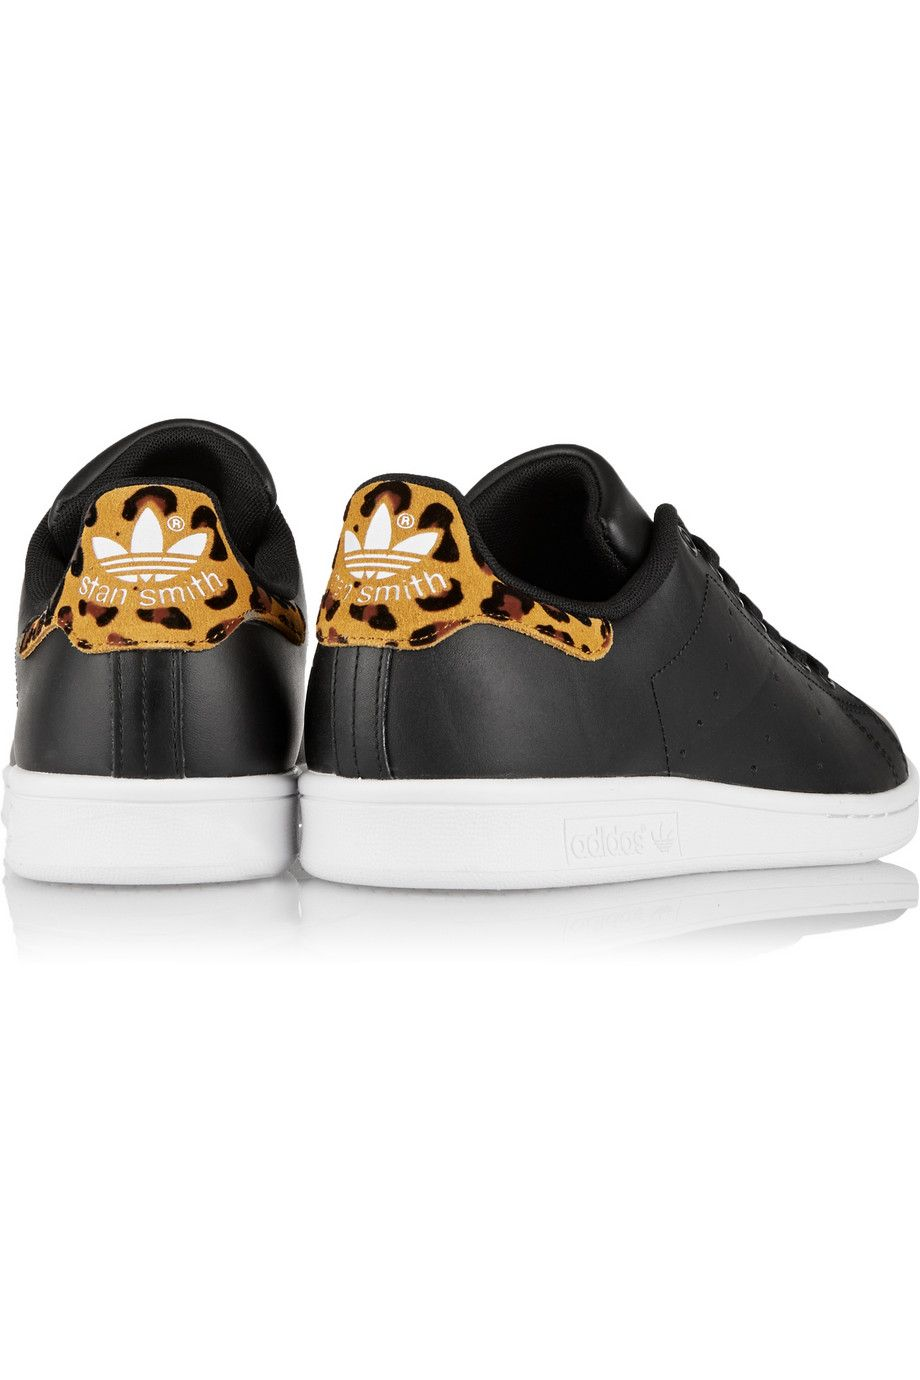 adidas stan smith black leopard b26591 sneakers pinterest stan smith adidas stan smith and adidas stan